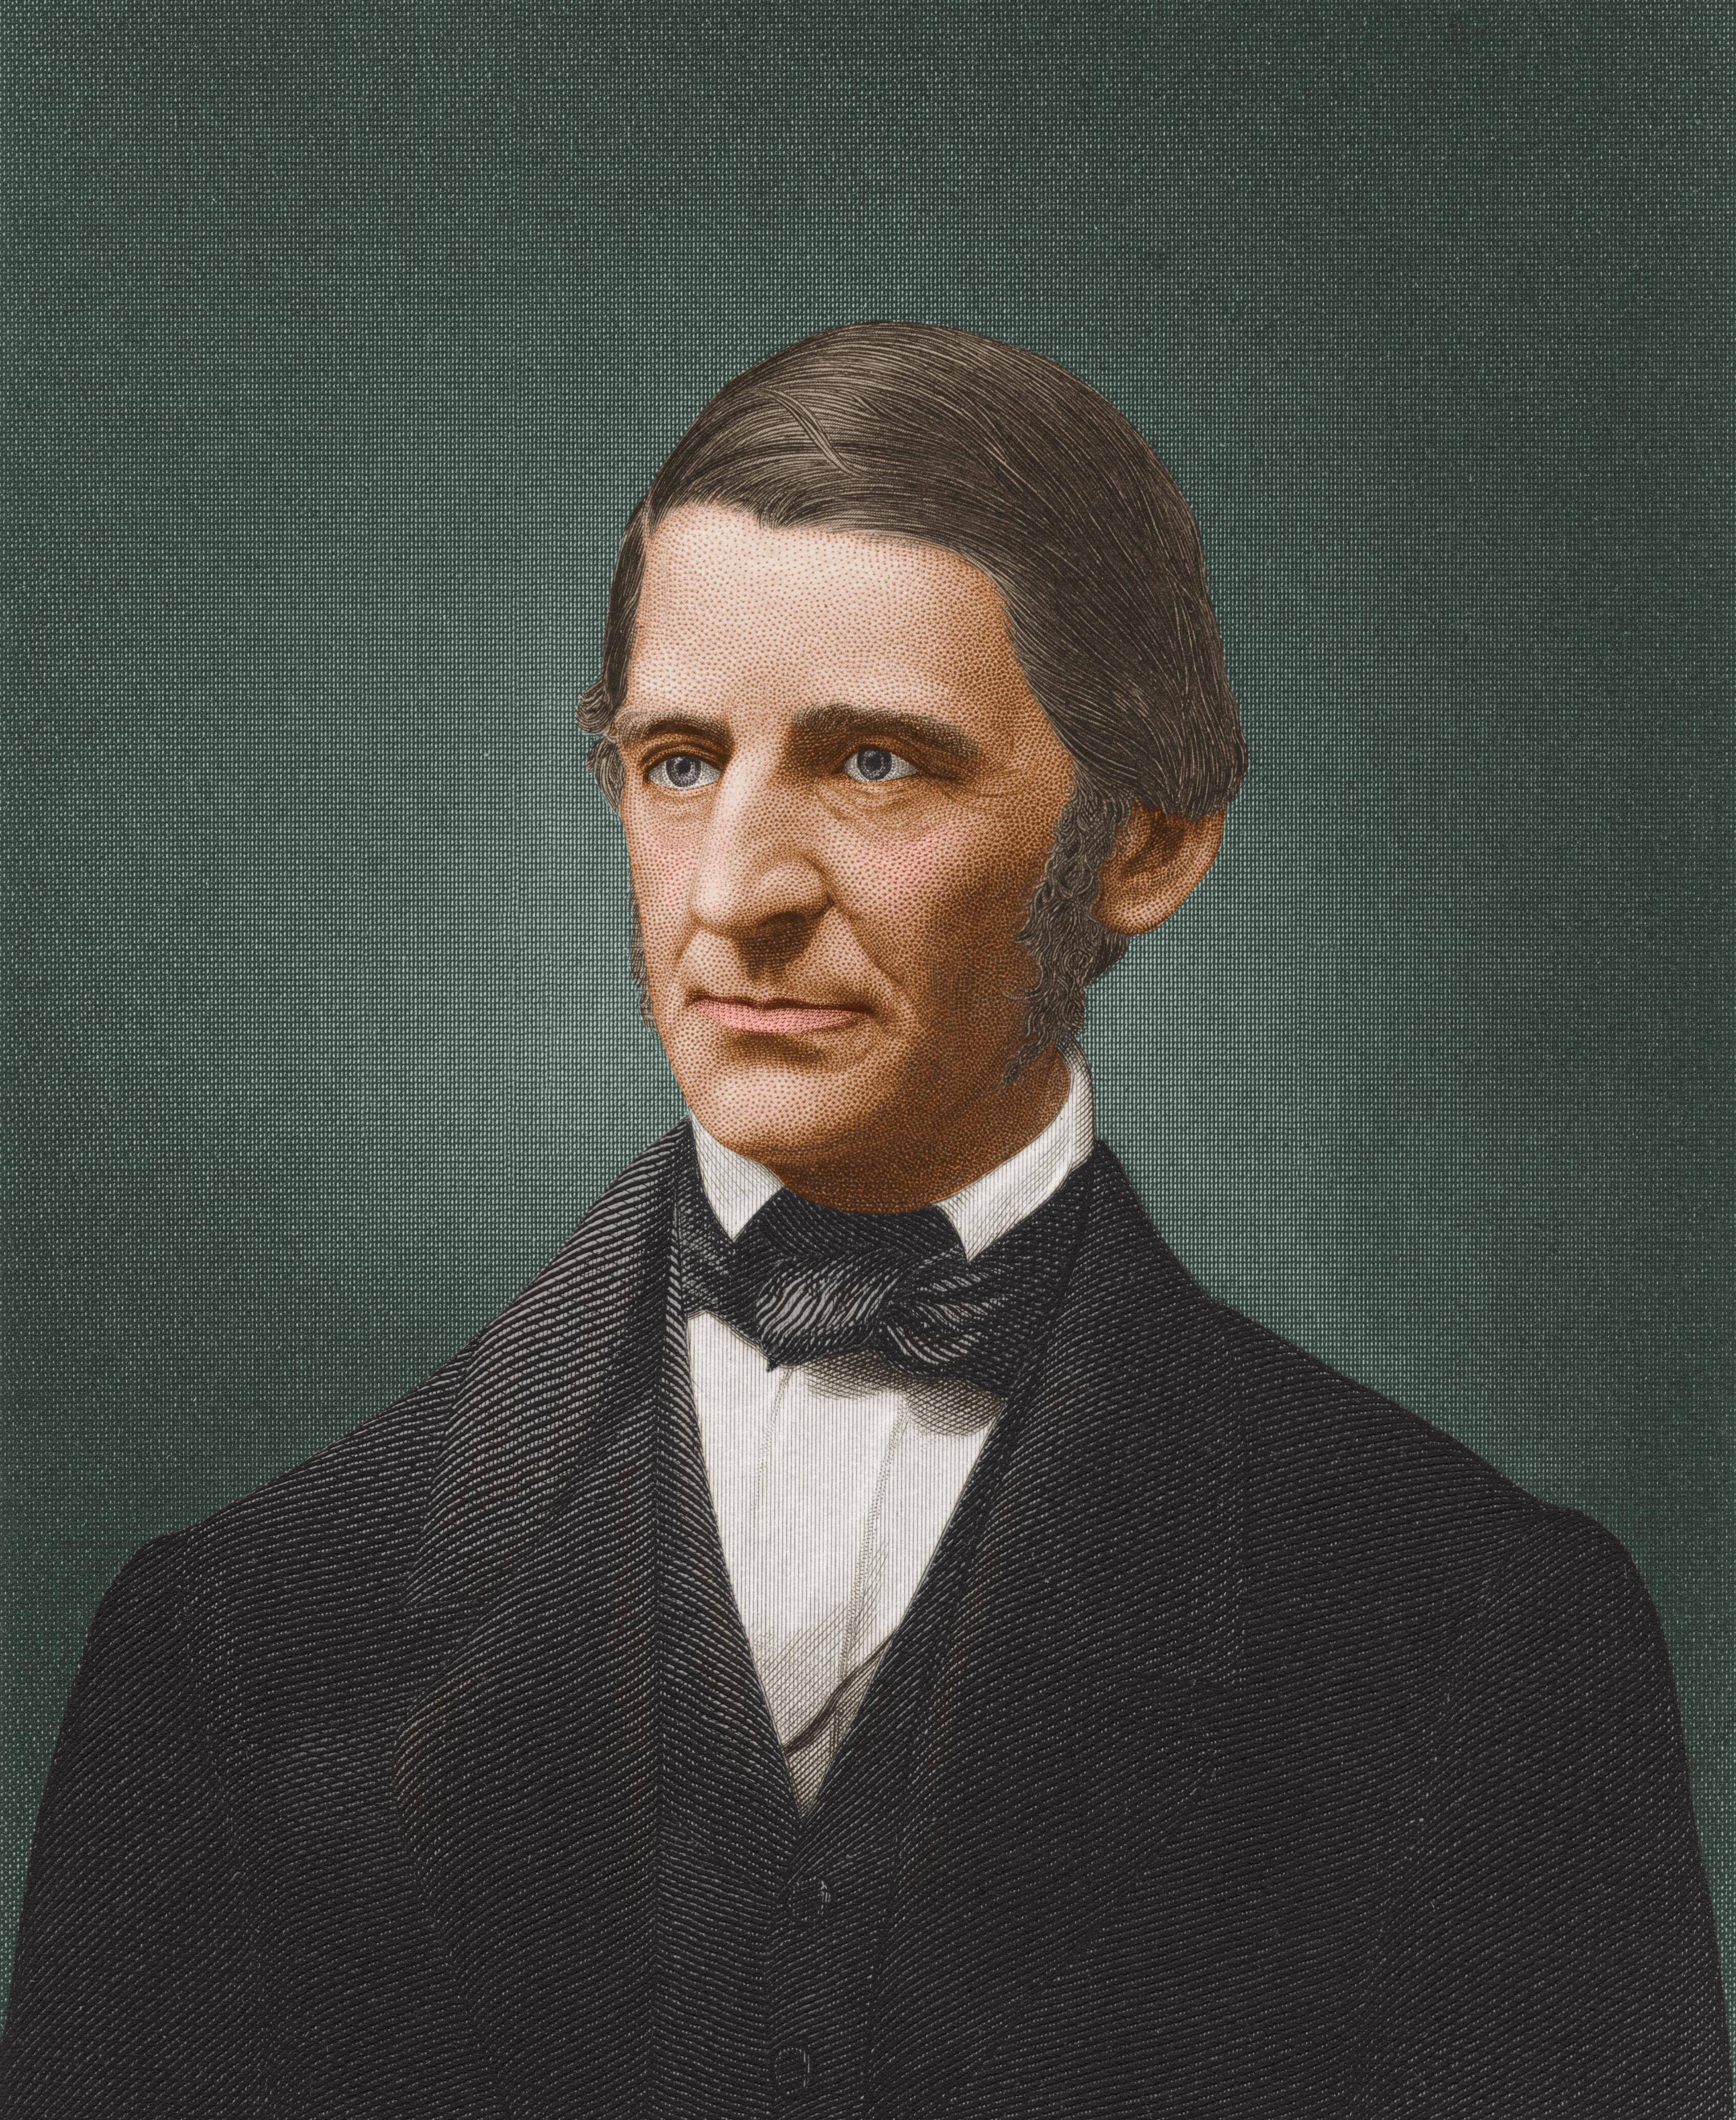 Ralph waldo emerson quotes for The emerson